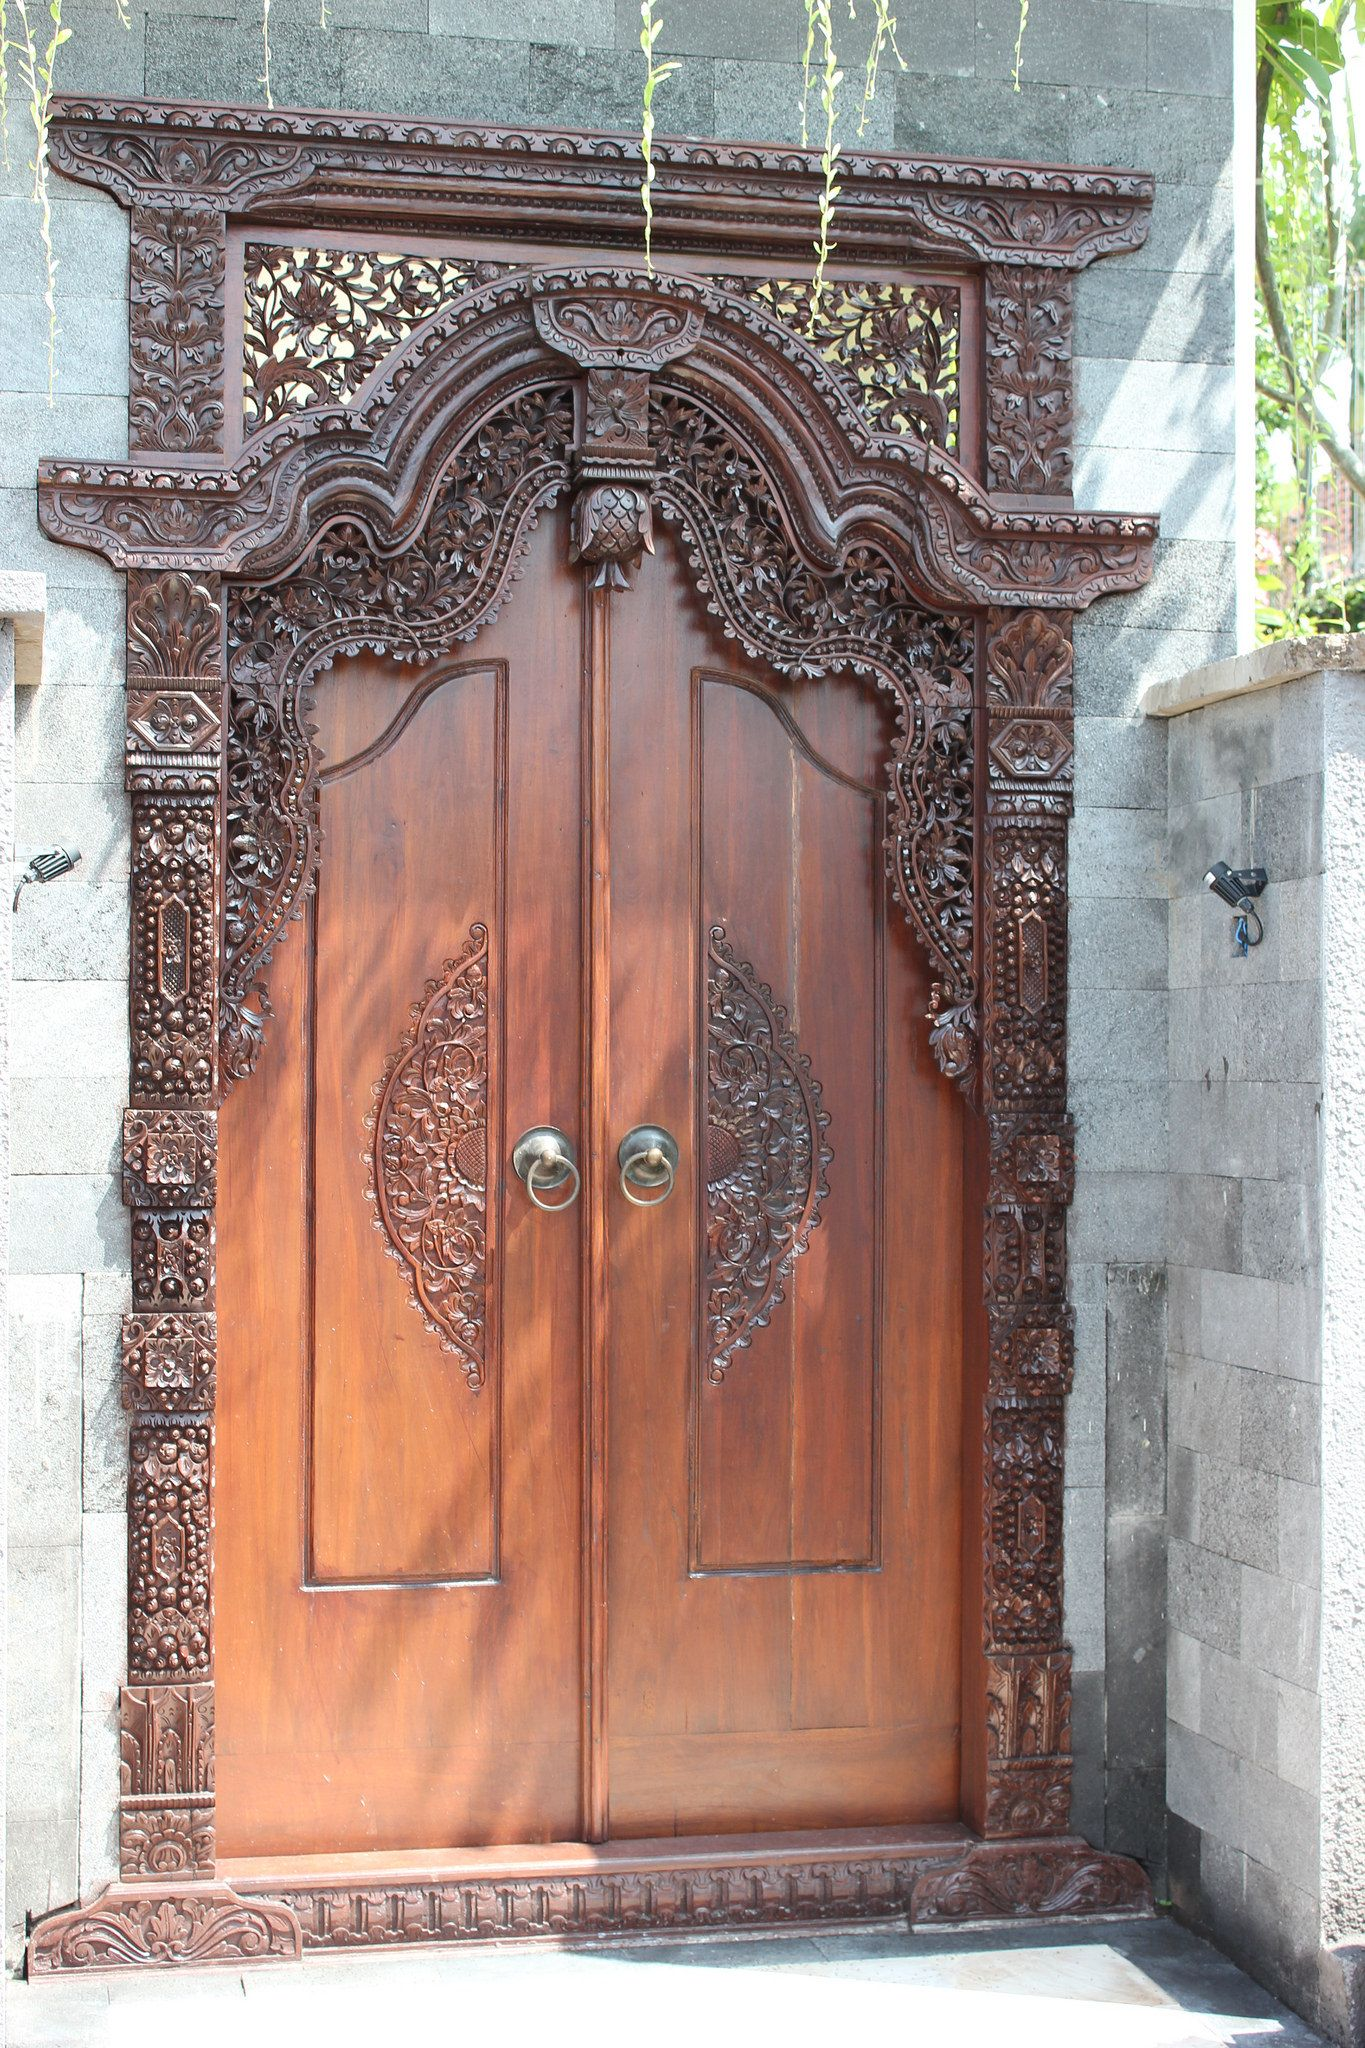 Pooja Room Door Carving Designs Google Search: Porte Sculptée N° 5 (With Images)